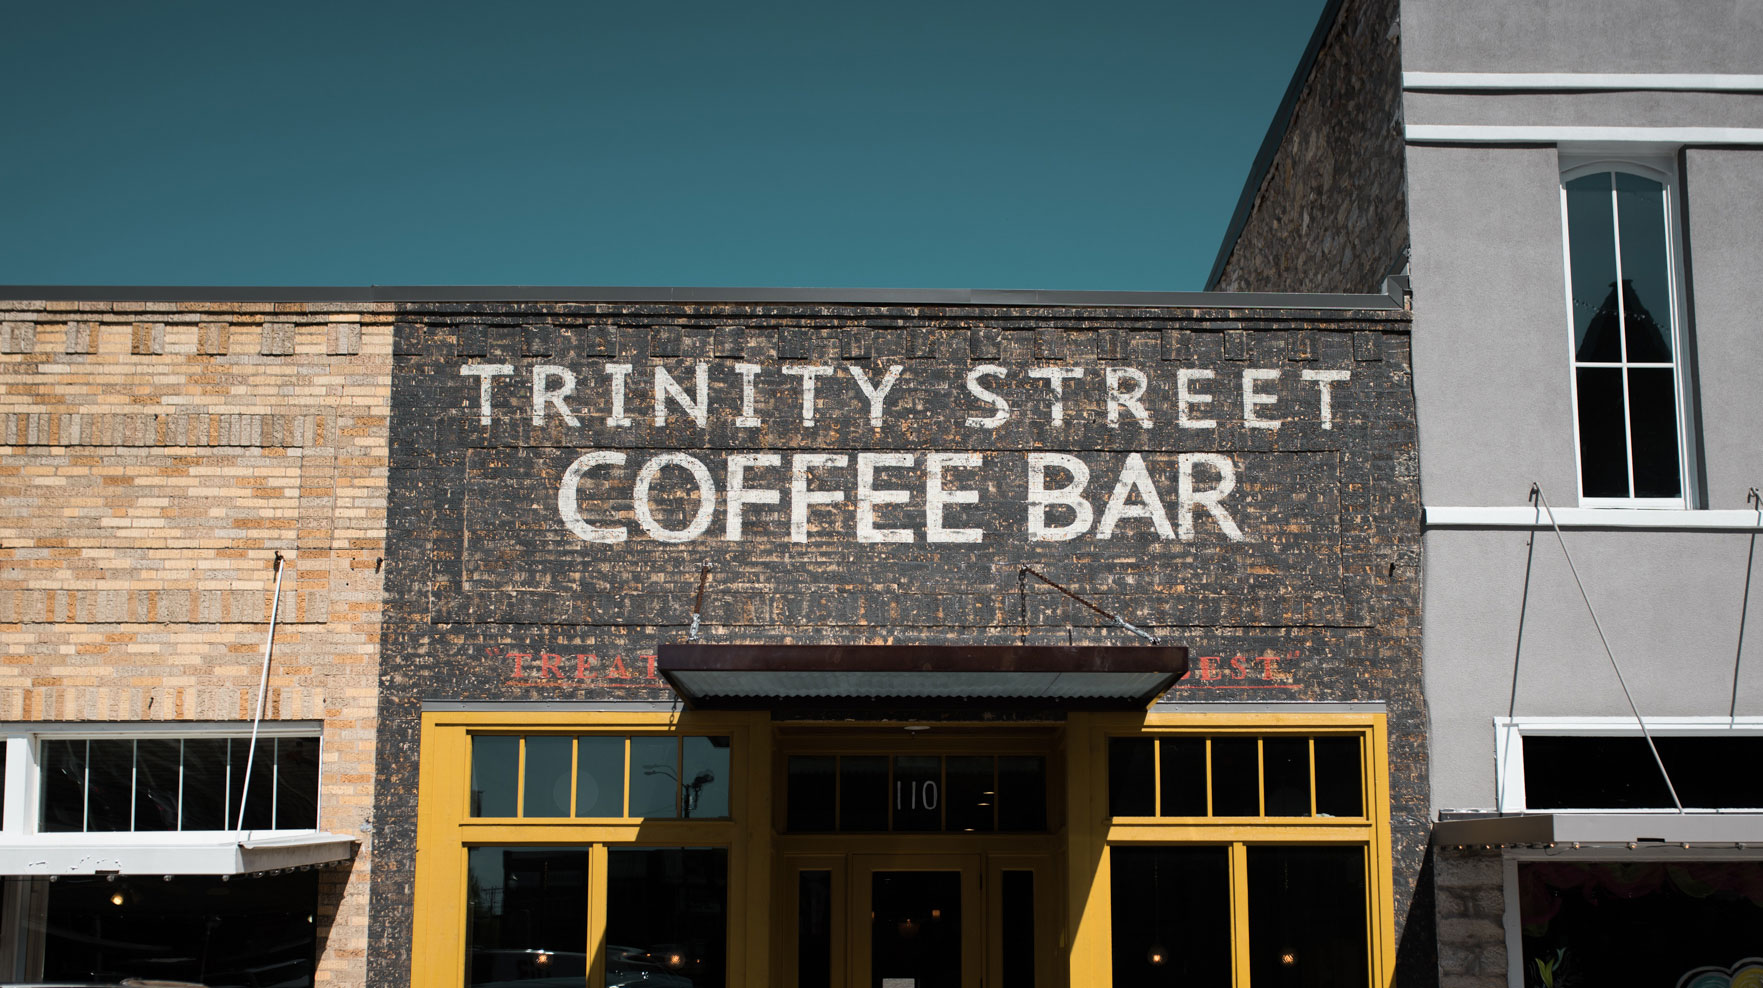 Trinity Street Coffee Bar Decatur Texas Hayhurst Brothers